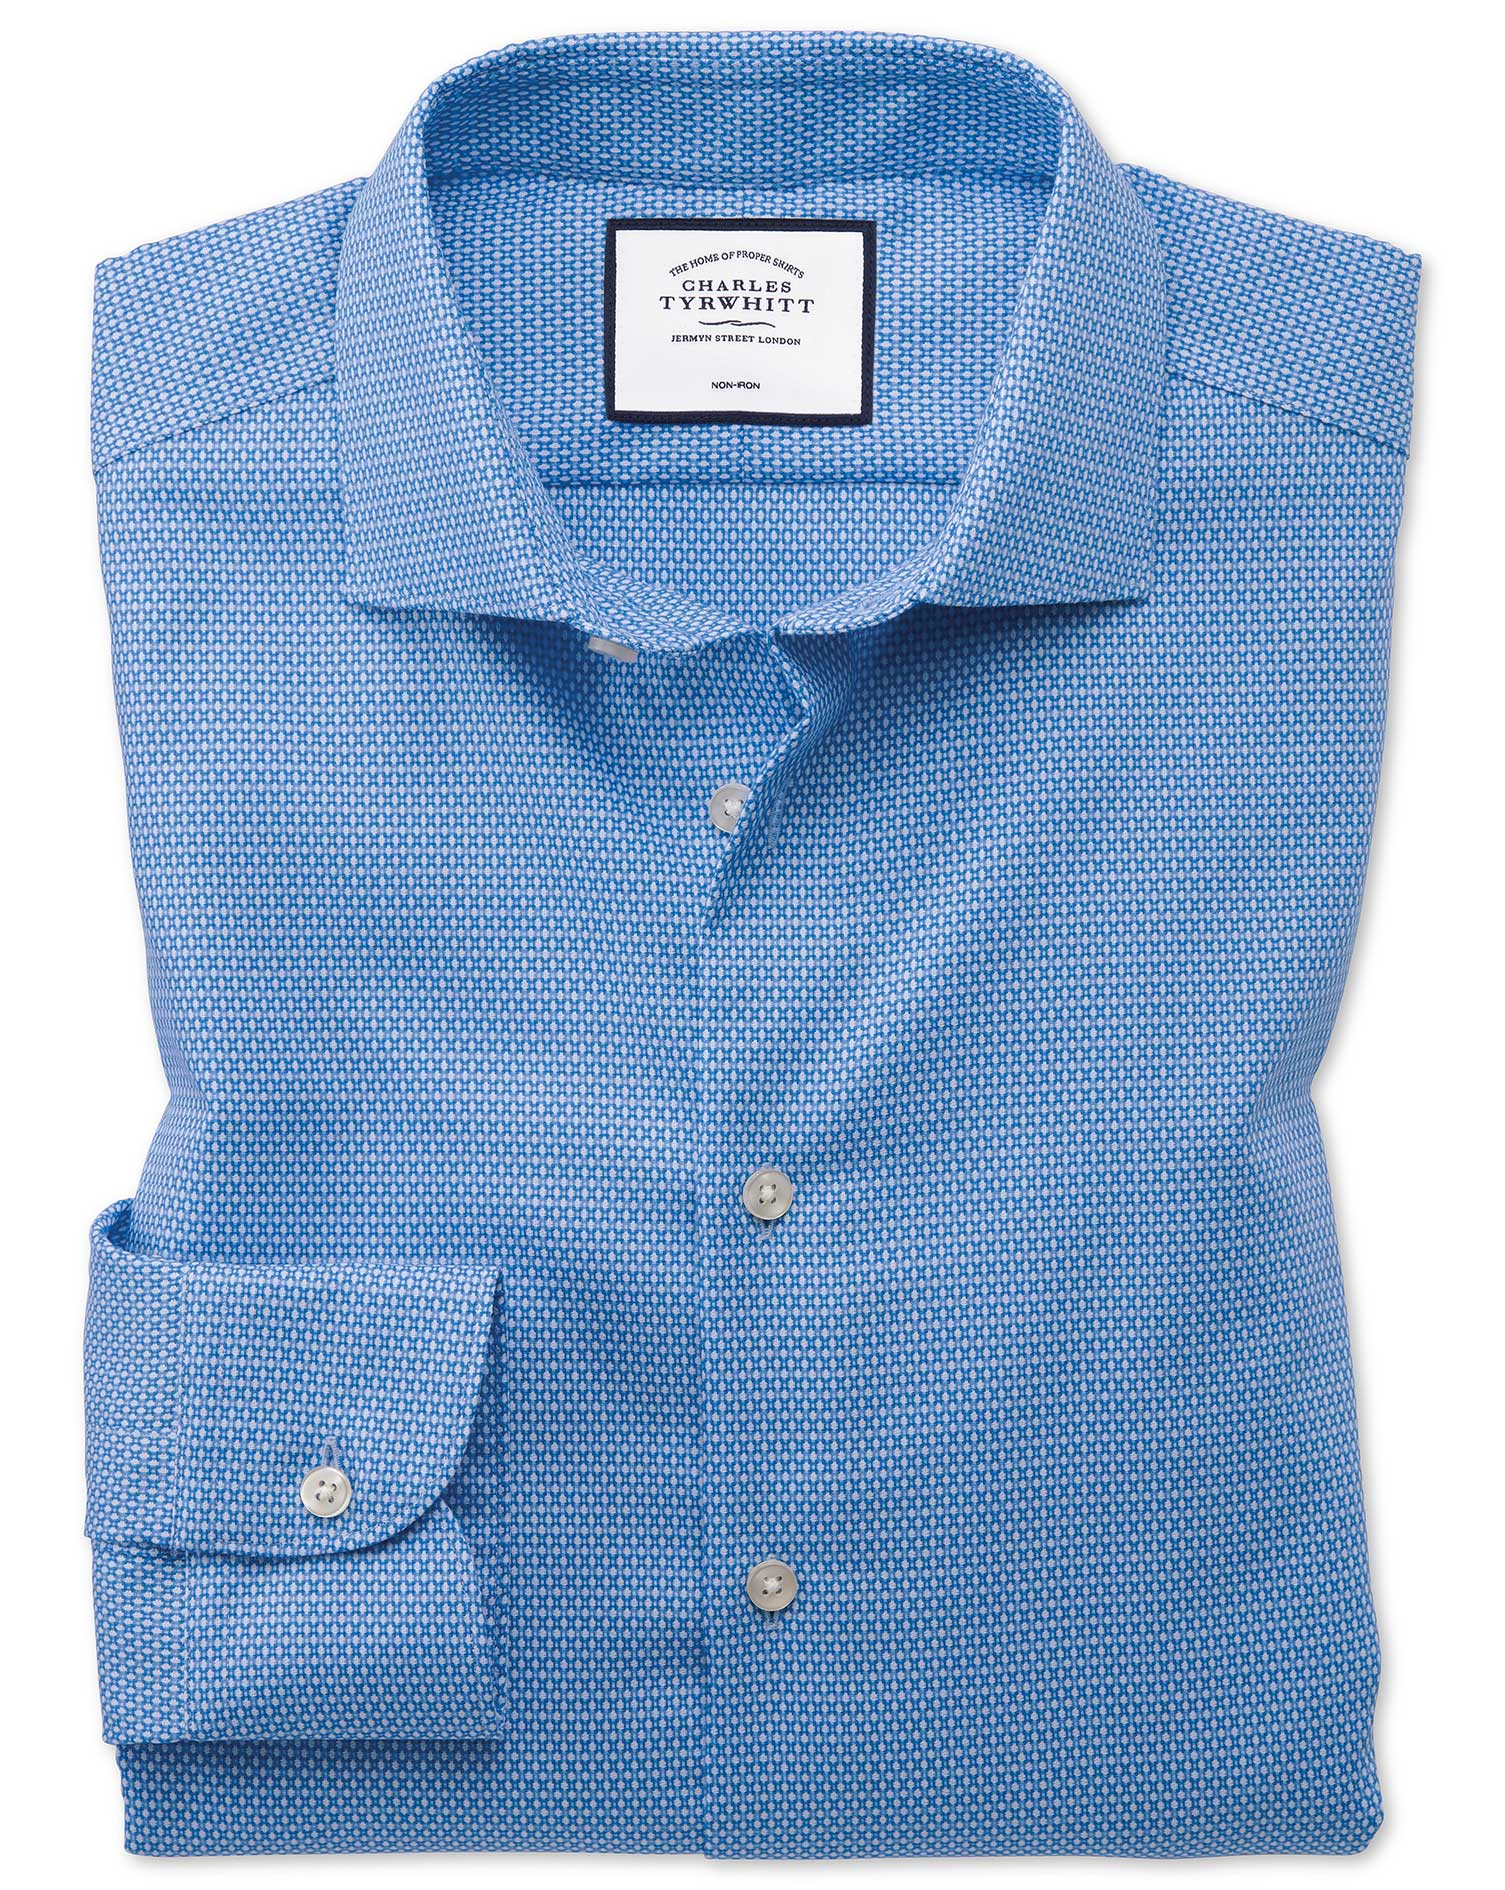 Extra Slim Fit Business Casual Non-Iron Modern Textures Sky Blue Cotton Formal Shirt Single Cuff Siz